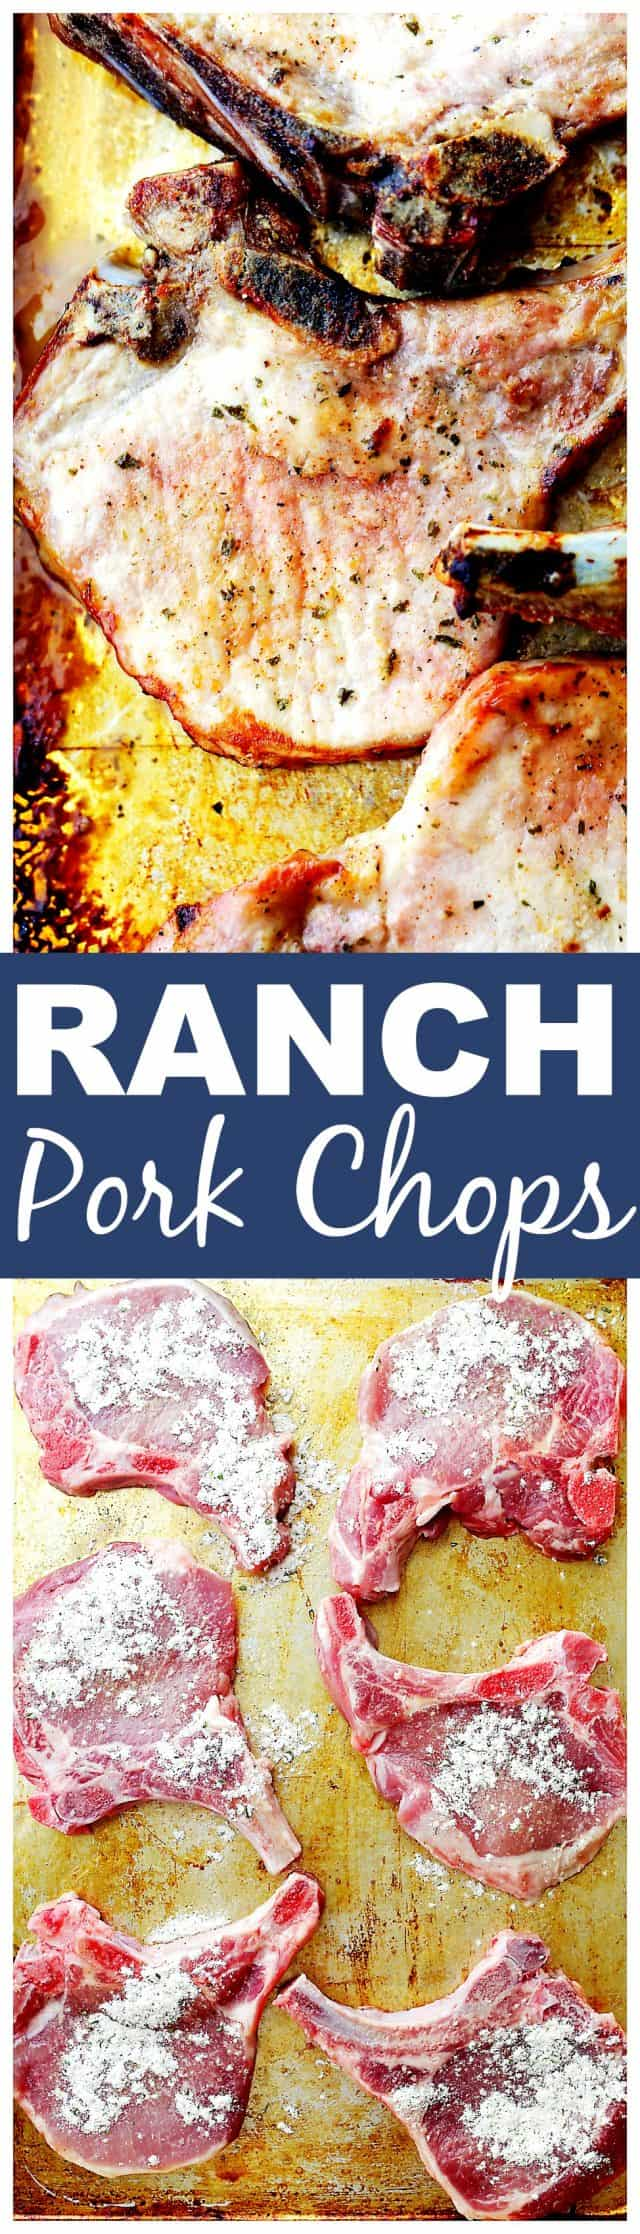 Ranch Pork Chops Recipe - Get flavorful pork chops with this surprising ranch dressing hack! Made with just a few simple ingredients, this quick and easy recipe will become your new favorite pork chops dinner!